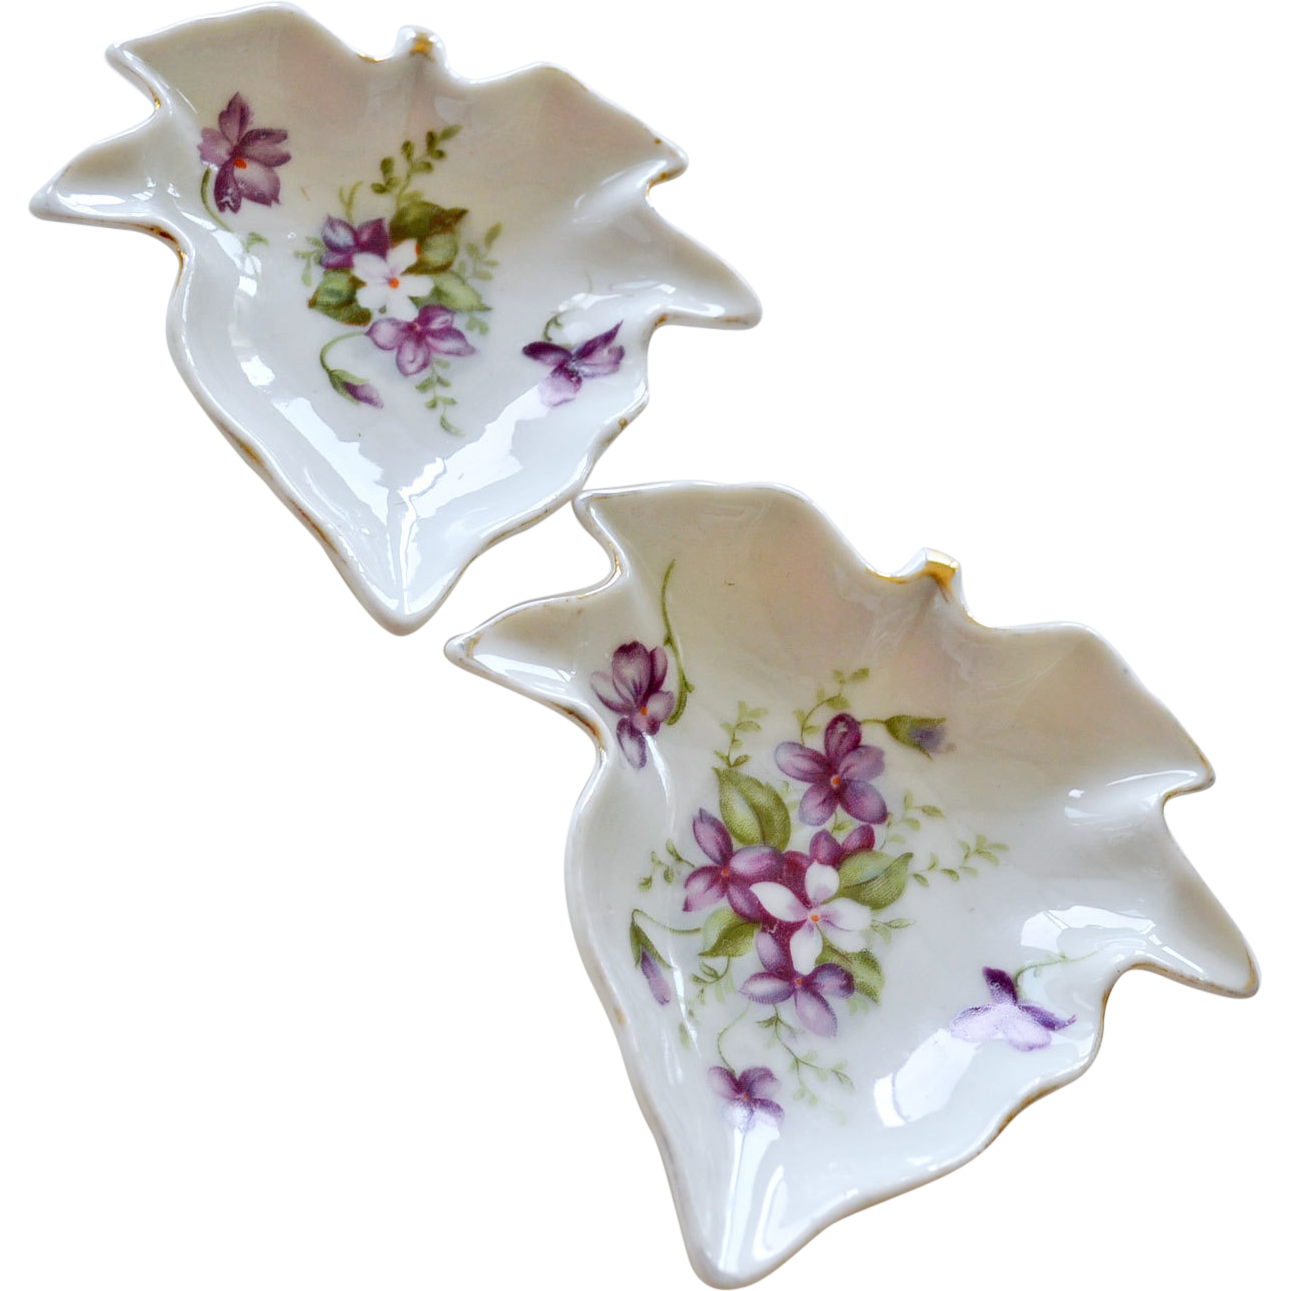 Two Nesting Lefton Porcelain Dishes with Hand Painted Violets